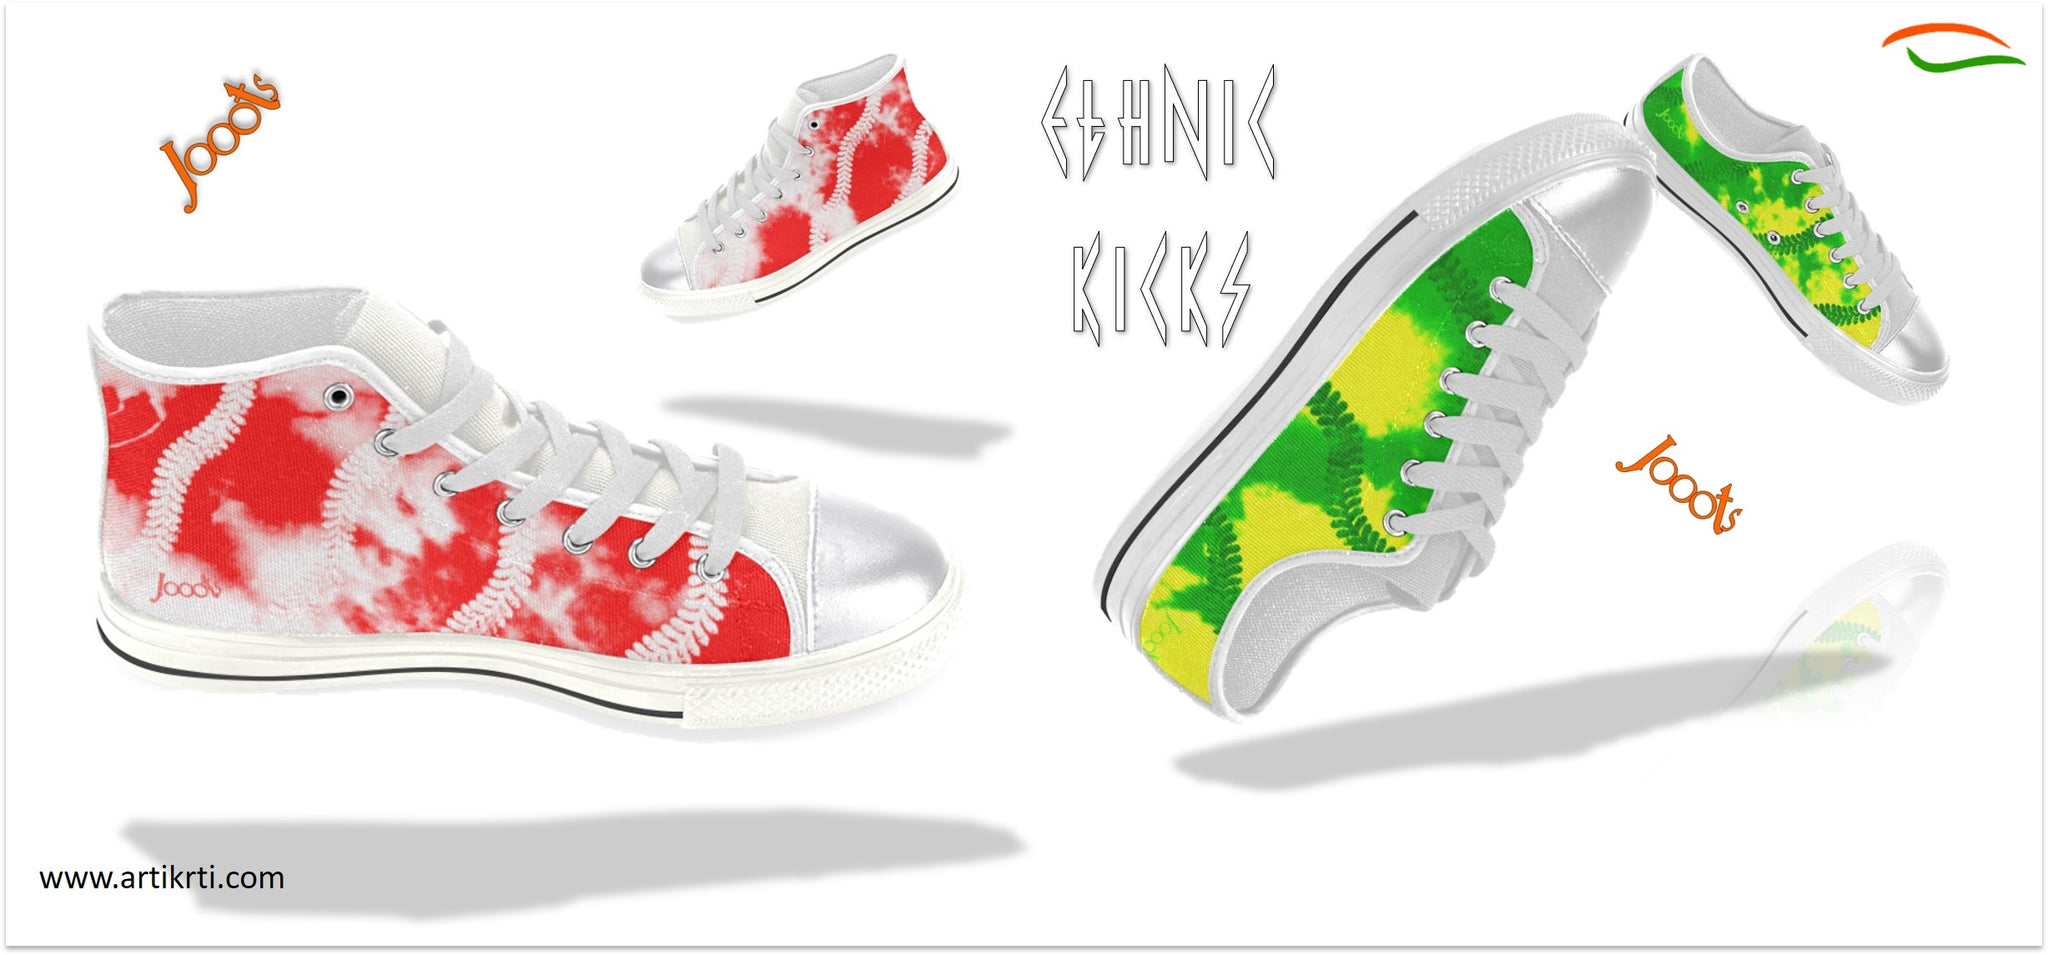 low-tops-keds-women-high-tops-tie-and-dye-style-red-white-neon-green-yellow-jooots-by-artikrti